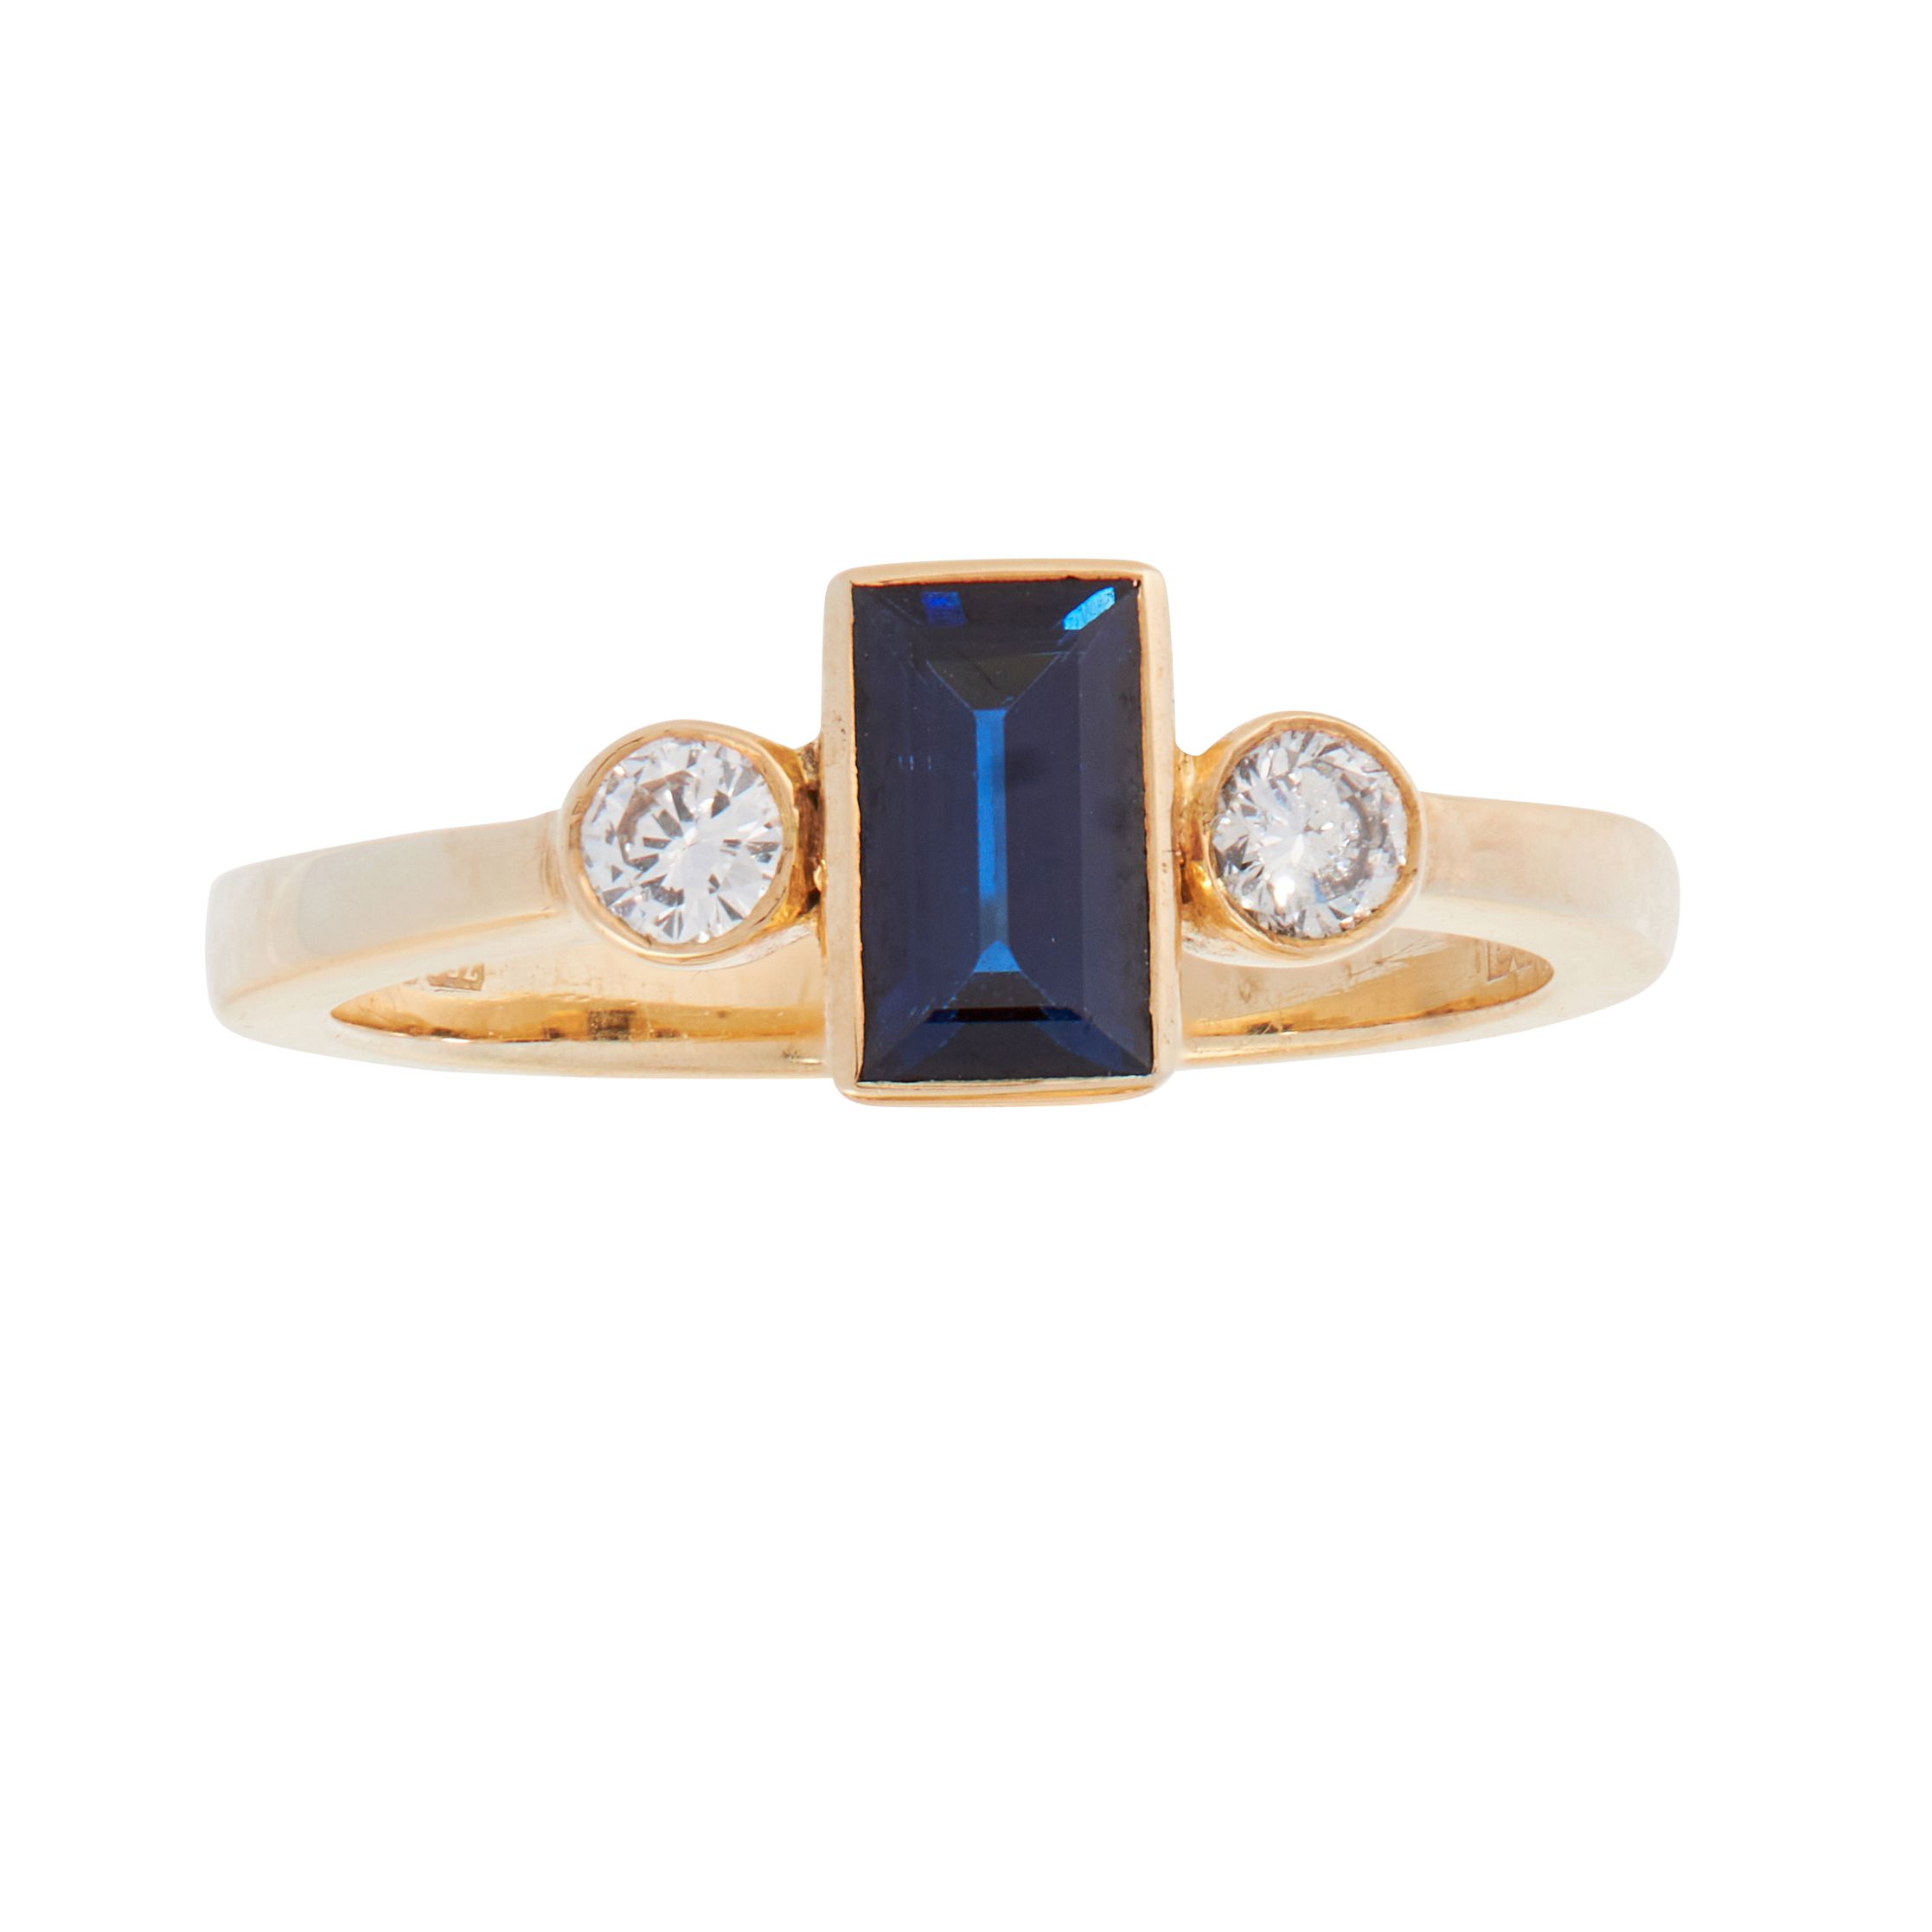 A SAPPHIRE AND DIAMOND DRESS RING in 18ct yellow gold, set with a step cut blue sapphire between two